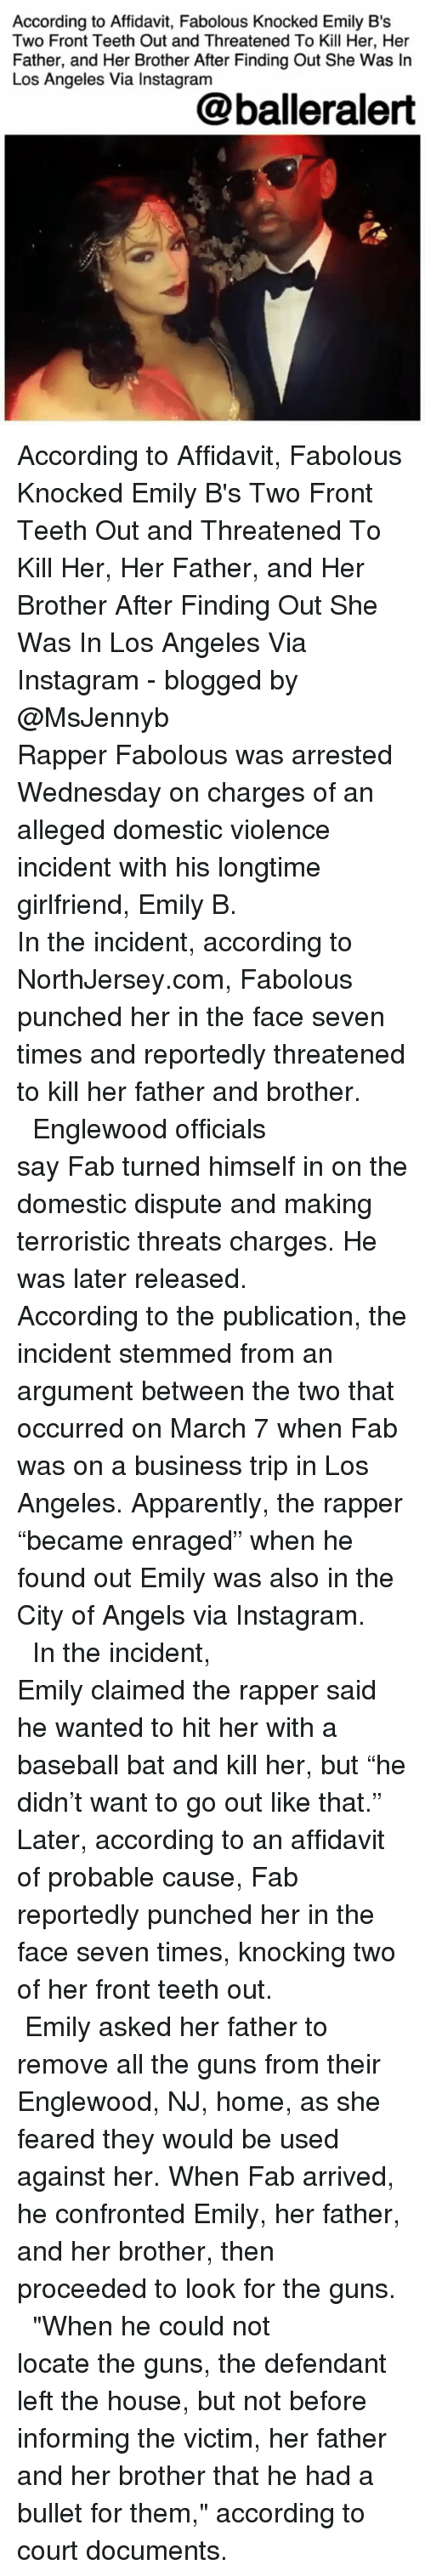 """Apparently, Baseball, and Fabolous: According to Affidavit, Fabolous Knocked Emily B's  Two Front Teeth Out and Threatened To Kill Her, Her  Father, and Her Brother After Finding Out She Was In  Los Angeles Via Instagram  @balleralert According to Affidavit, Fabolous Knocked Emily B's Two Front Teeth Out and Threatened To Kill Her, Her Father, and Her Brother After Finding Out She Was In Los Angeles Via Instagram - blogged by @MsJennyb ⠀⠀⠀⠀⠀⠀⠀⠀⠀ ⠀⠀⠀⠀⠀⠀⠀⠀⠀ Rapper Fabolous was arrested Wednesday on charges of an alleged domestic violence incident with his longtime girlfriend, Emily B. ⠀⠀⠀⠀⠀⠀⠀⠀⠀ ⠀⠀⠀⠀⠀⠀⠀⠀⠀ In the incident, according to NorthJersey.com, Fabolous punched her in the face seven times and reportedly threatened to kill her father and brother. ⠀⠀⠀⠀⠀⠀⠀⠀⠀ ⠀⠀⠀⠀⠀⠀⠀⠀⠀ Englewood officials say Fab turned himself in on the domestic dispute and making terroristic threats charges. He was later released. ⠀⠀⠀⠀⠀⠀⠀⠀⠀ ⠀⠀⠀⠀⠀⠀⠀⠀⠀ According to the publication, the incident stemmed from an argument between the two that occurred on March 7 when Fab was on a business trip in Los Angeles. Apparently, the rapper """"became enraged"""" when he found out Emily was also in the City of Angels via Instagram. ⠀⠀⠀⠀⠀⠀⠀⠀⠀ ⠀⠀⠀⠀⠀⠀⠀⠀⠀ In the incident, Emily claimed the rapper said he wanted to hit her with a baseball bat and kill her, but """"he didn't want to go out like that."""" Later, according to an affidavit of probable cause, Fab reportedly punched her in the face seven times, knocking two of her front teeth out. ⠀⠀⠀⠀⠀⠀⠀⠀⠀ ⠀⠀⠀⠀⠀⠀⠀⠀⠀ Emily asked her father to remove all the guns from their Englewood, NJ, home, as she feared they would be used against her. When Fab arrived, he confronted Emily, her father, and her brother, then proceeded to look for the guns. ⠀⠀⠀⠀⠀⠀⠀⠀⠀ ⠀⠀⠀⠀⠀⠀⠀⠀⠀ """"When he could not locate the guns, the defendant left the house, but not before informing the victim, her father and her brother that he had a bullet for them,"""" according to court documents."""